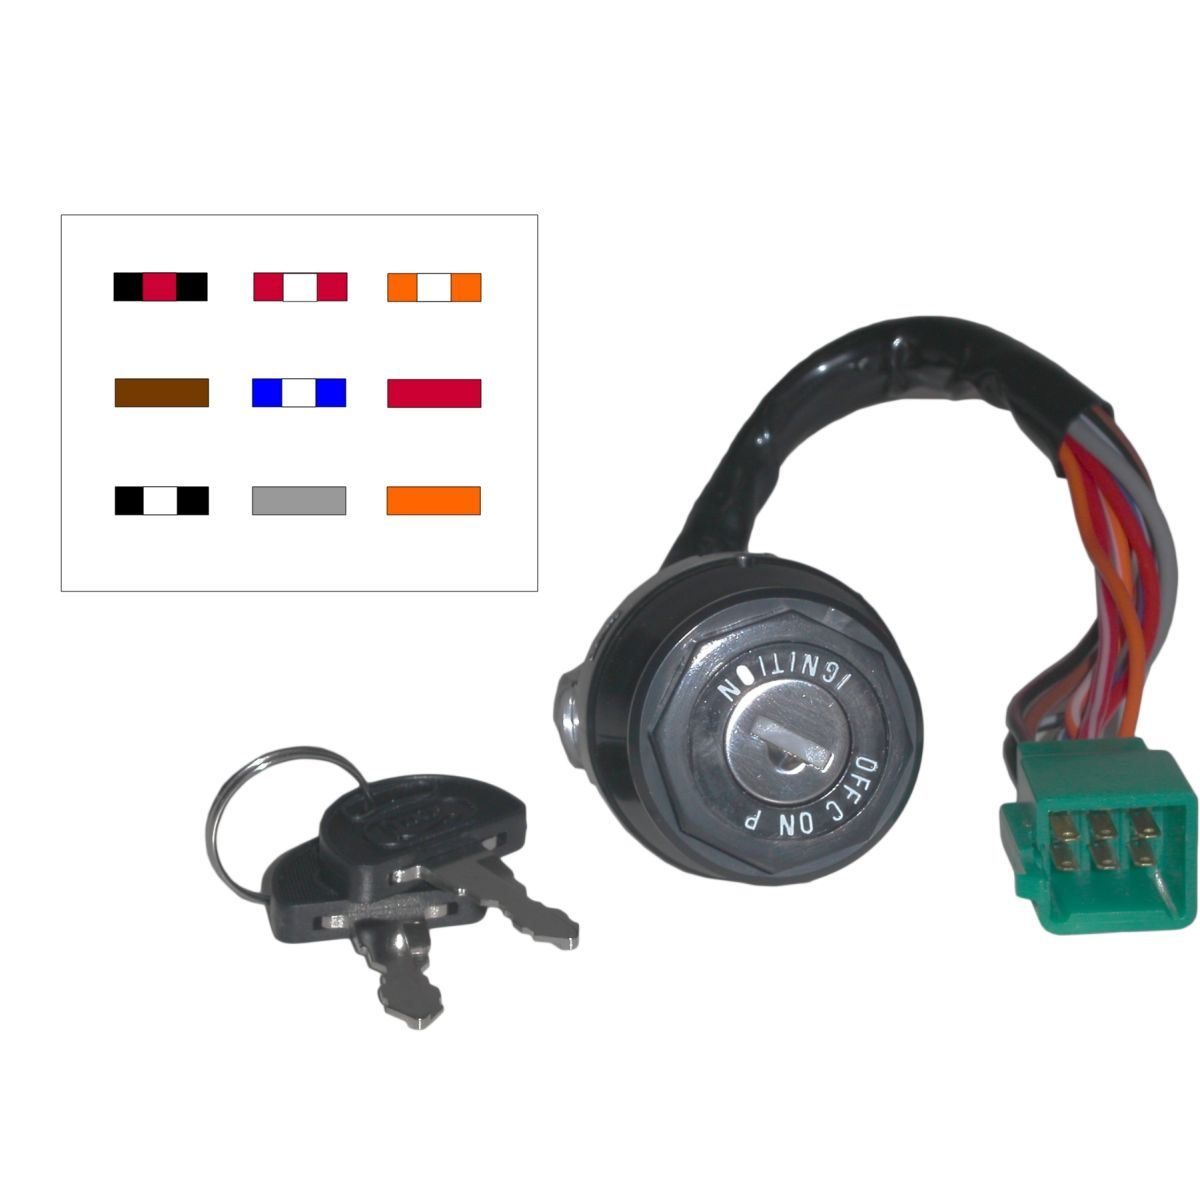 Wiring A Security Light Uk